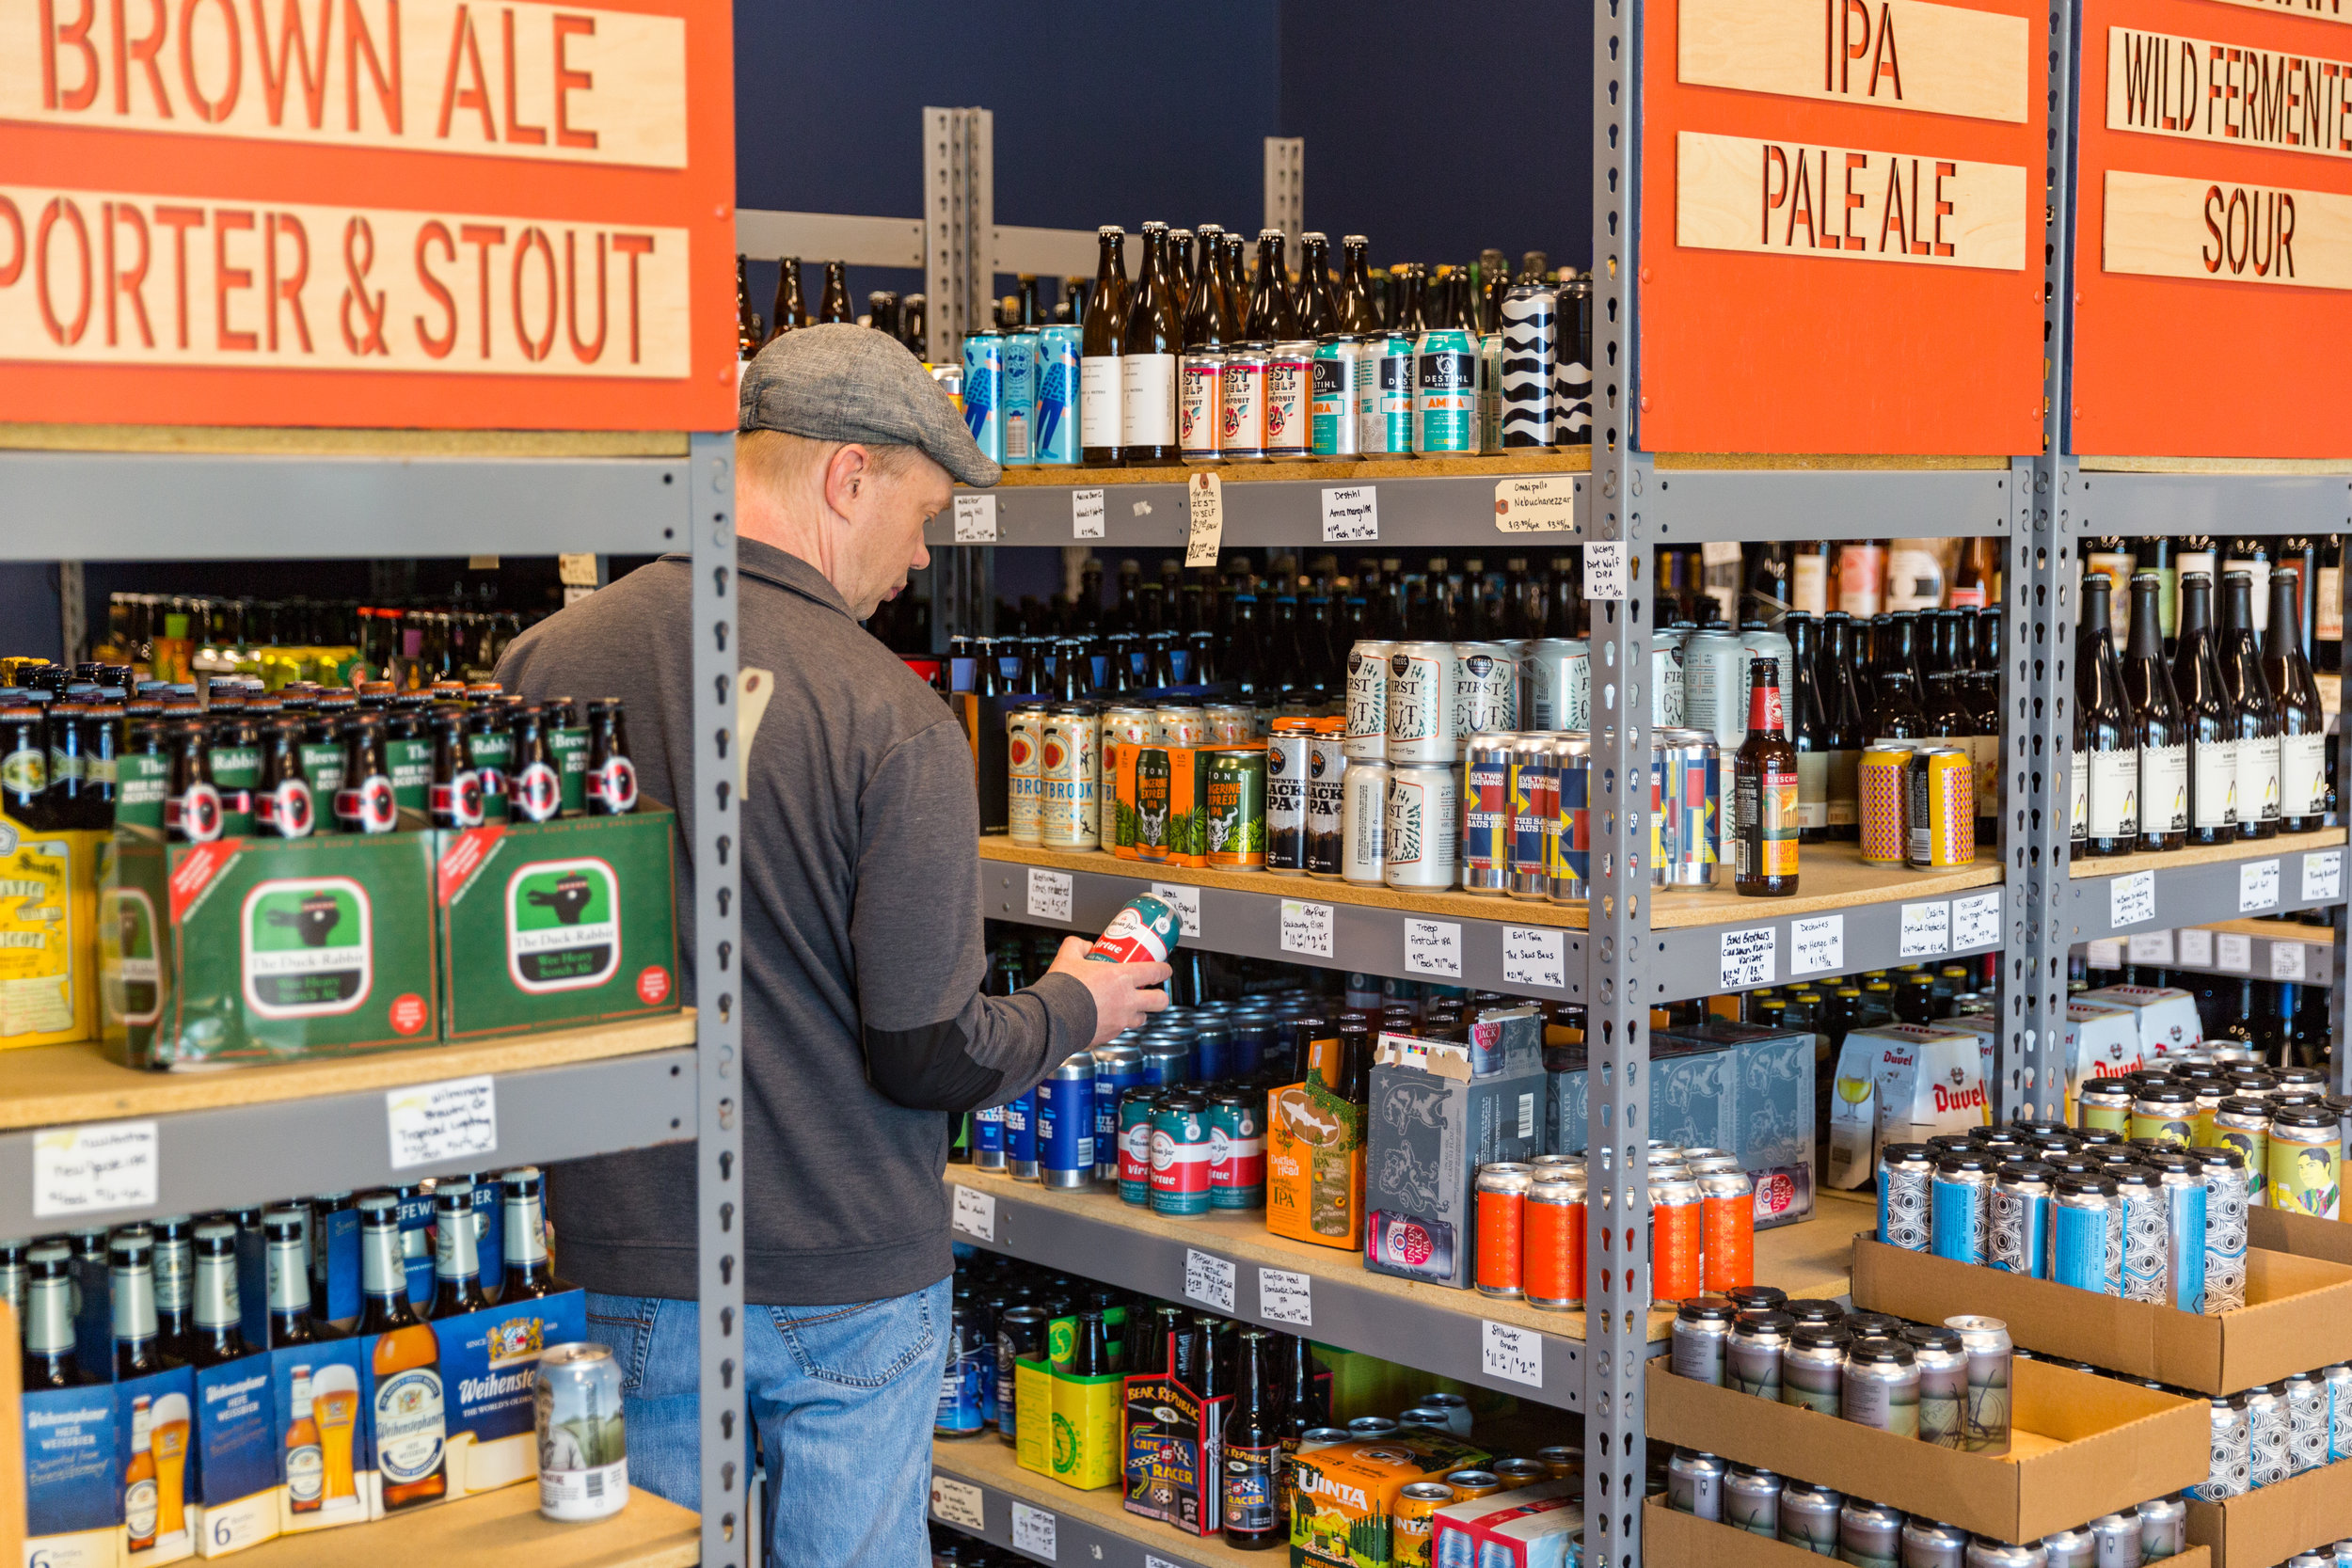 BOTTLES & CANS - The Glass Jug features over 500 beers, wines, ciders, meads, kombucha, and sodas in bottles and cans, including a large selection of local, rare, and limited-release offerings from around the country and the world.